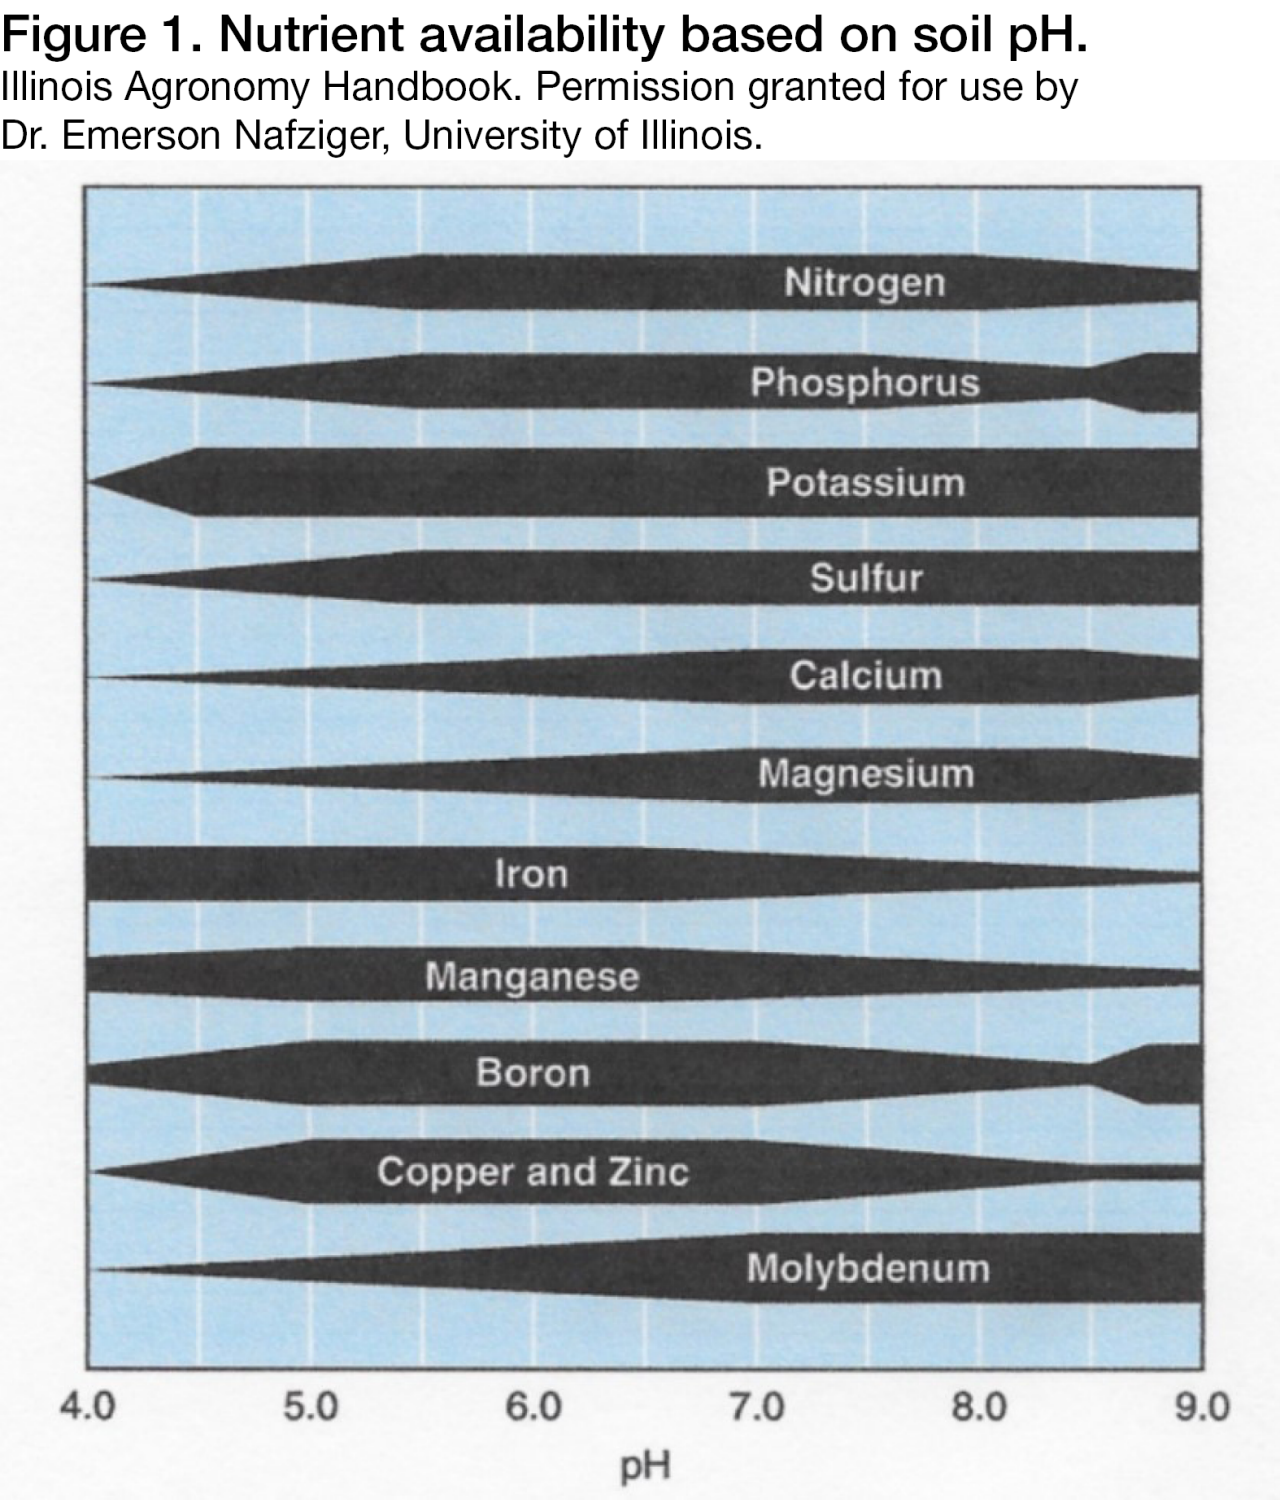 Nutrient availability based on soil pH. Illinois Agronomy Handbook. Permission granted for use by Dr. Emerson Nafziger, University of Illinois.